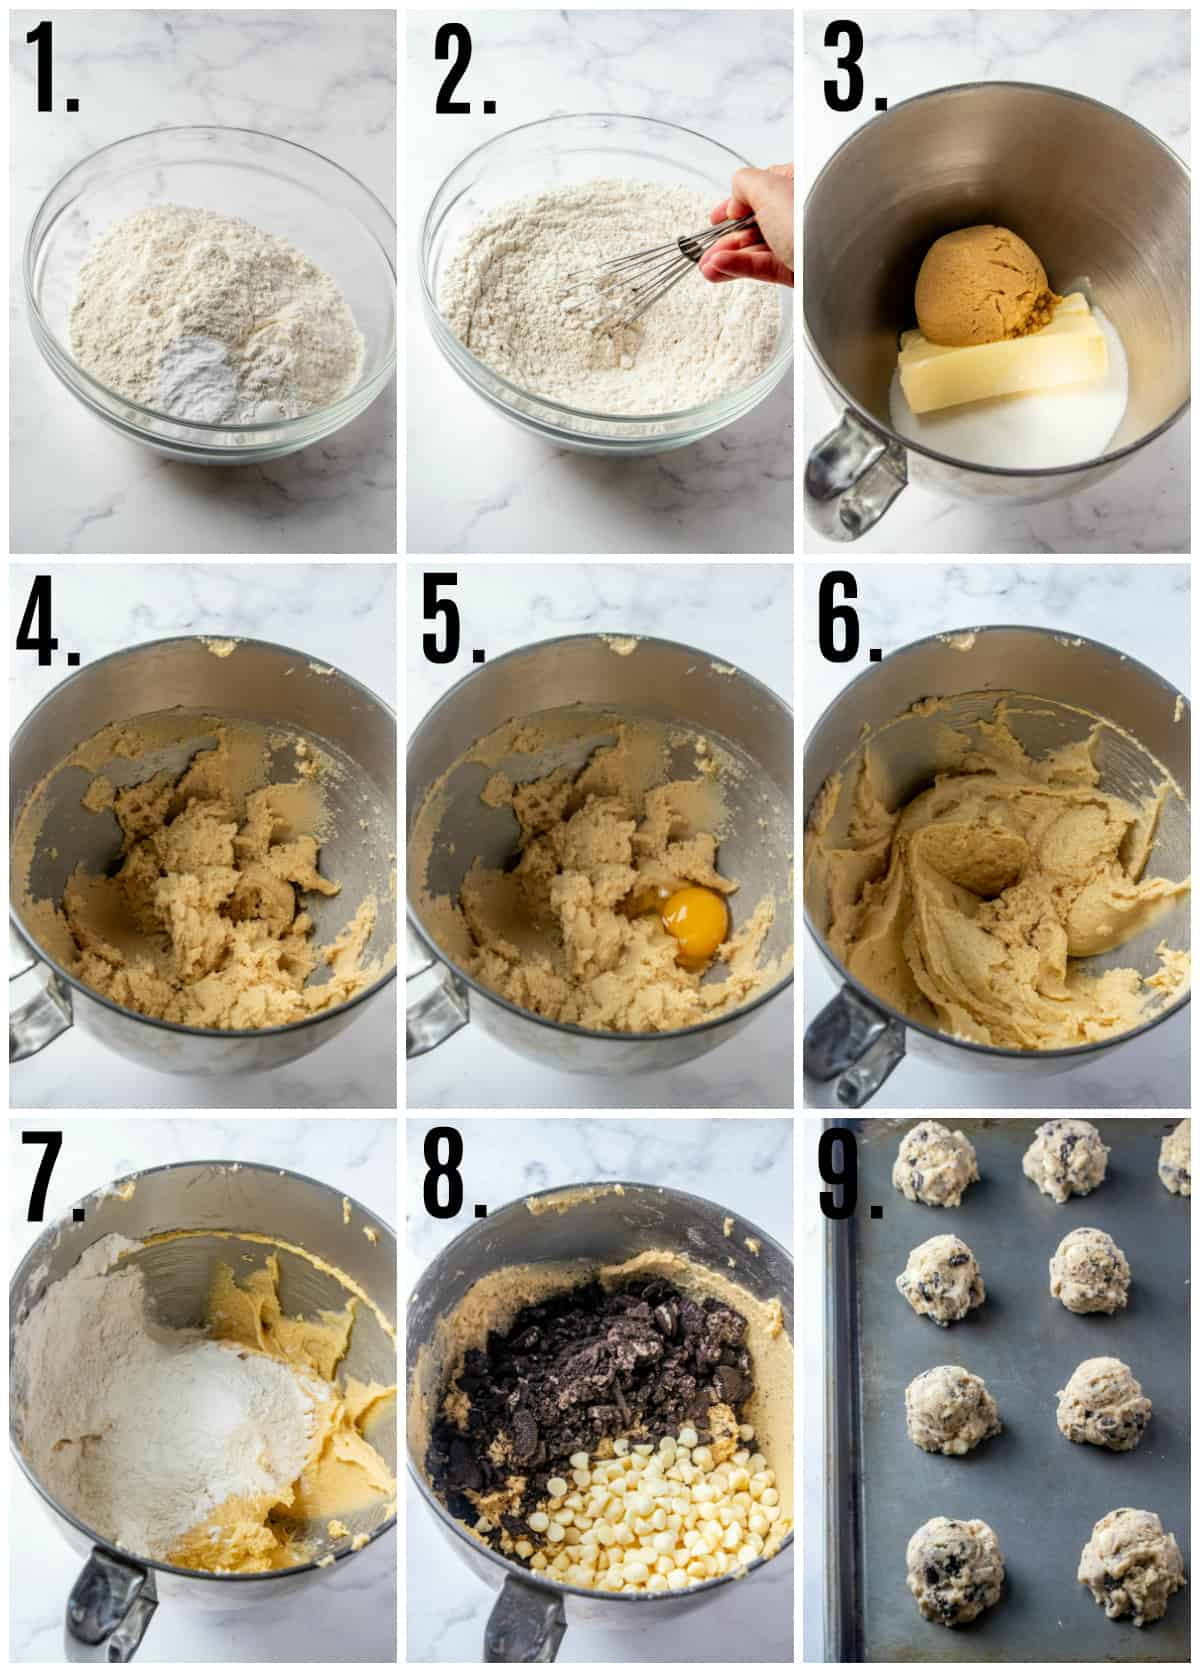 Step by step photos on how to make Cookies and Cream Cookies